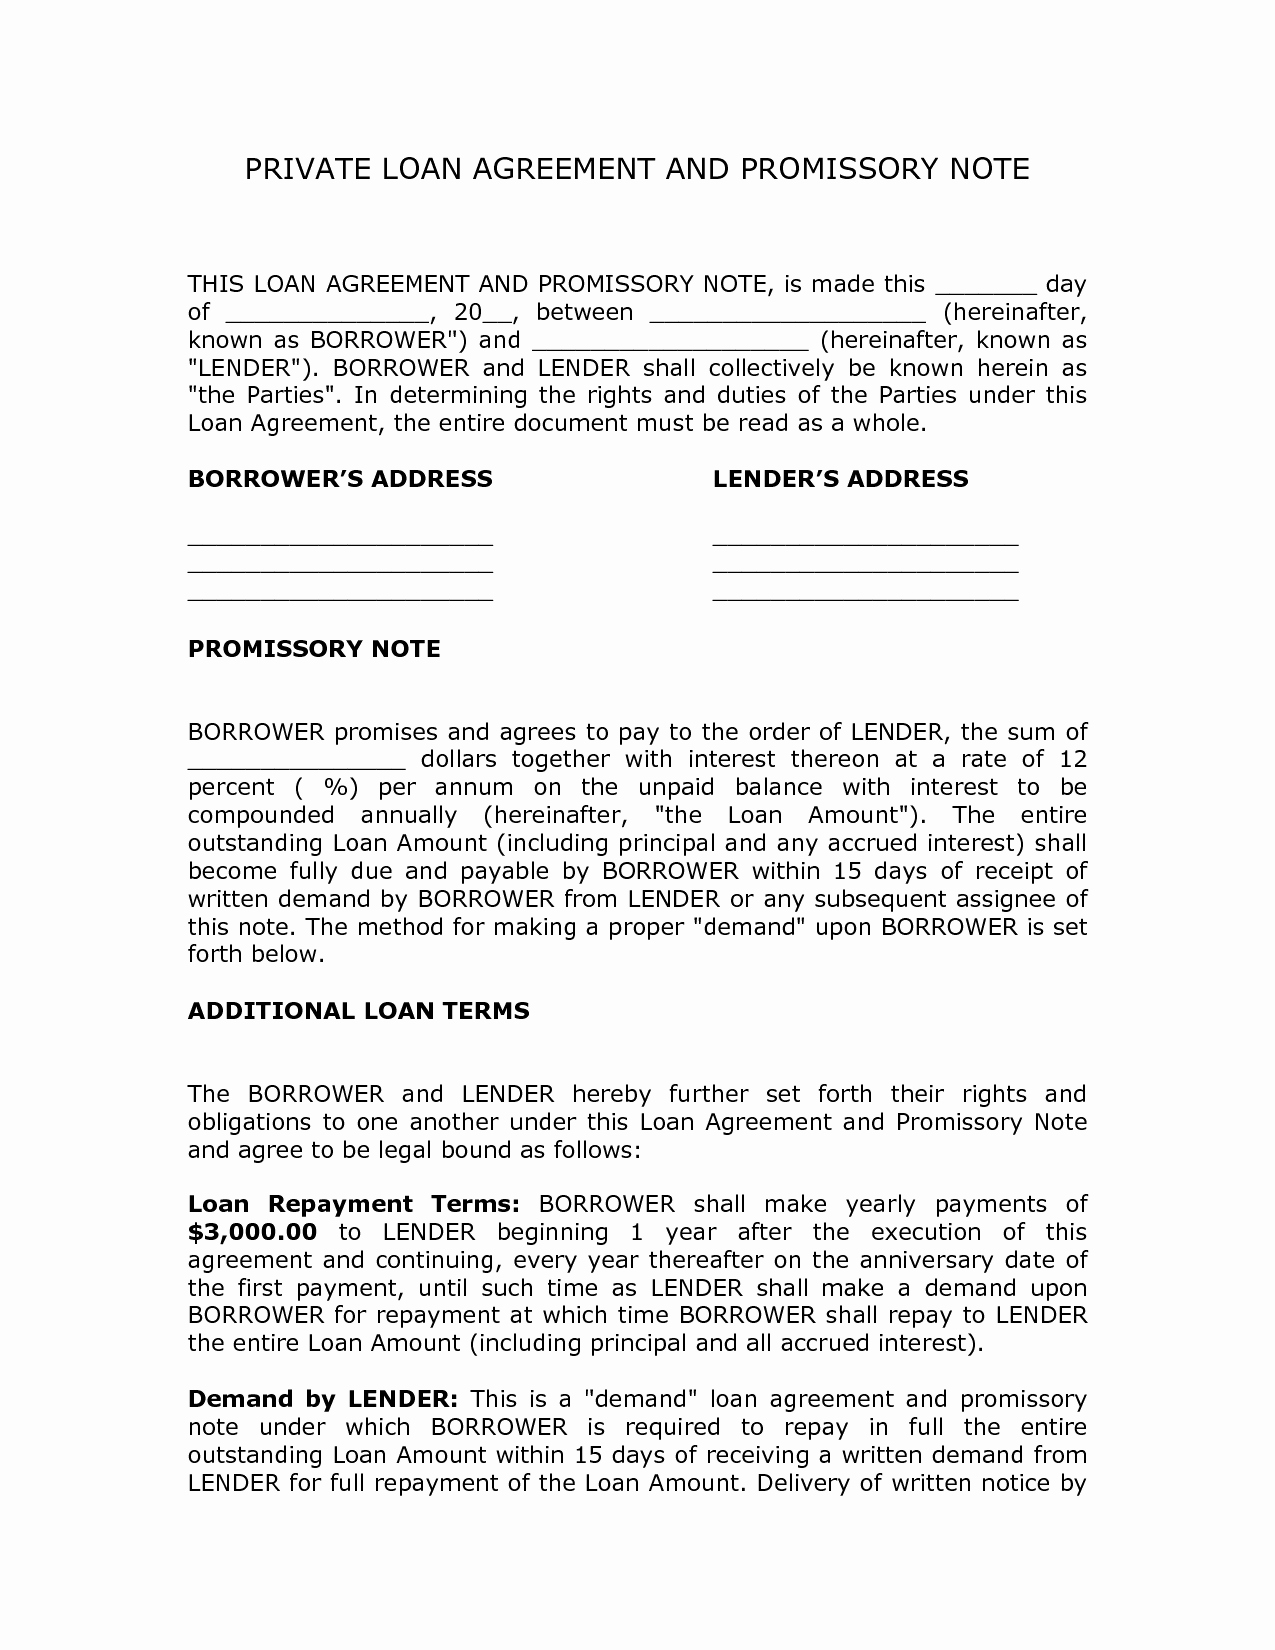 Bank Loan Proposal Template Elegant Bank Loan Proposal Template Luxury Corporate Loan Contract Sample